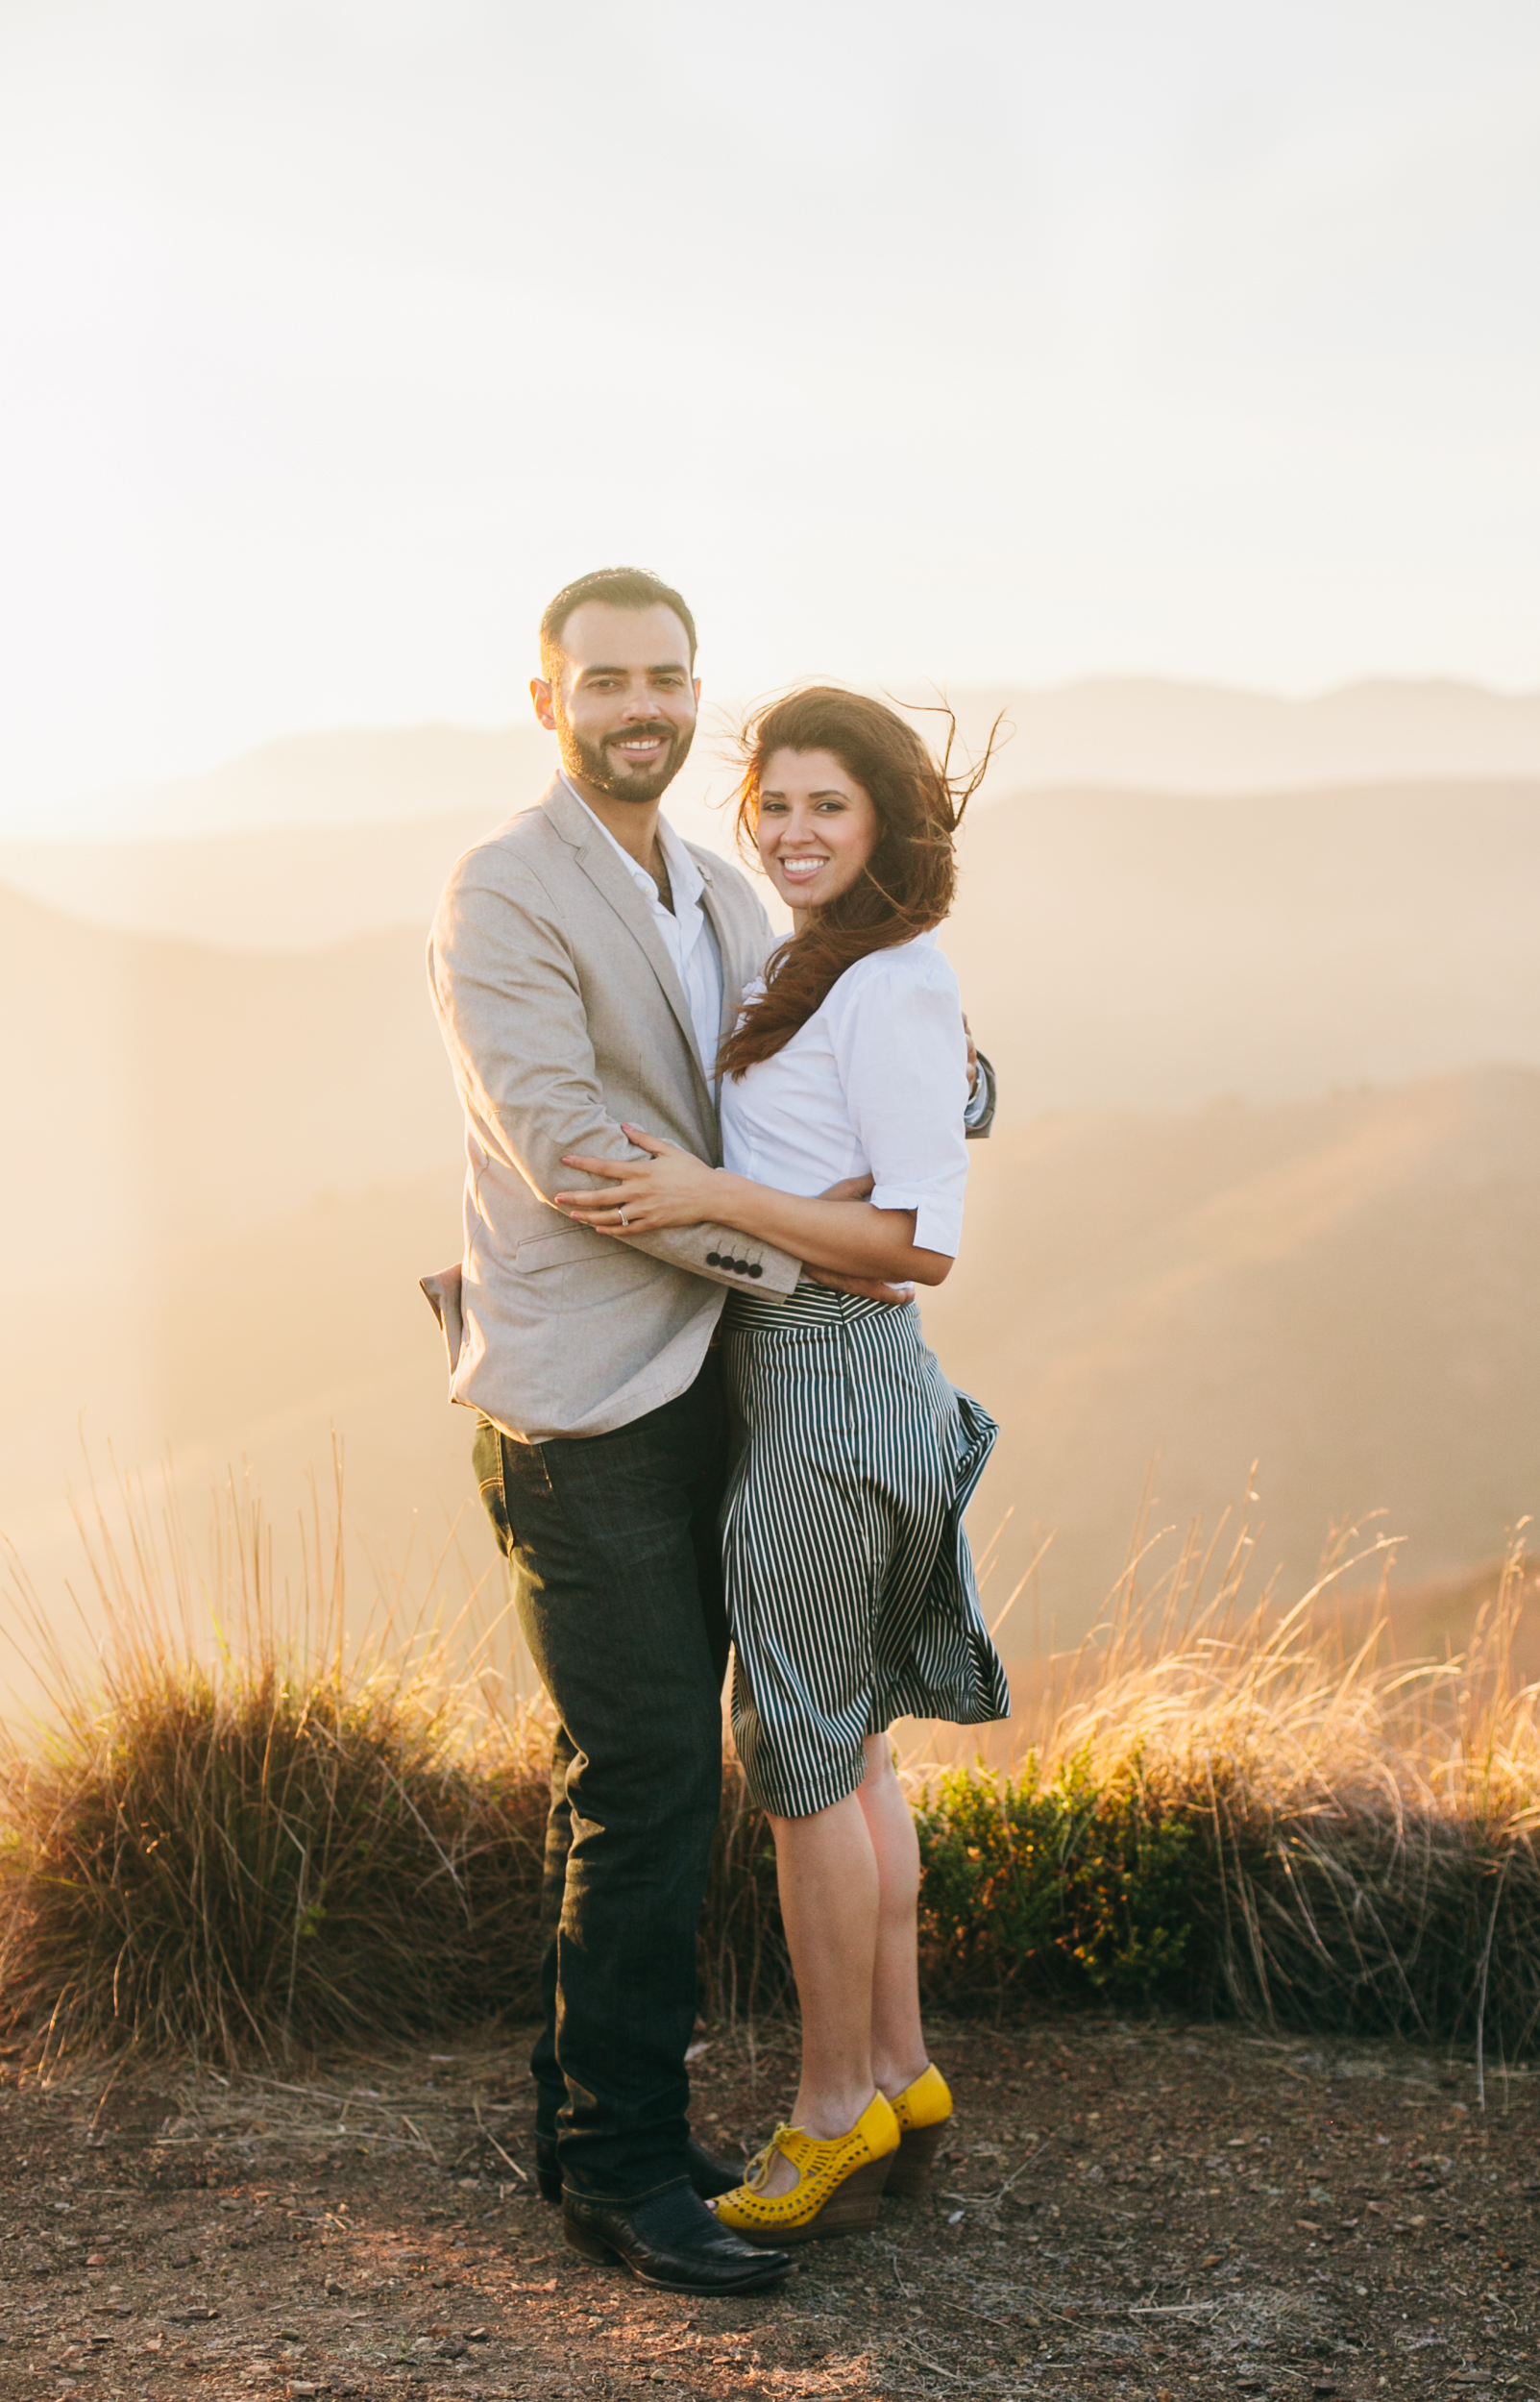 marin-headlands-engagement-session-luis-cecilia-46.html